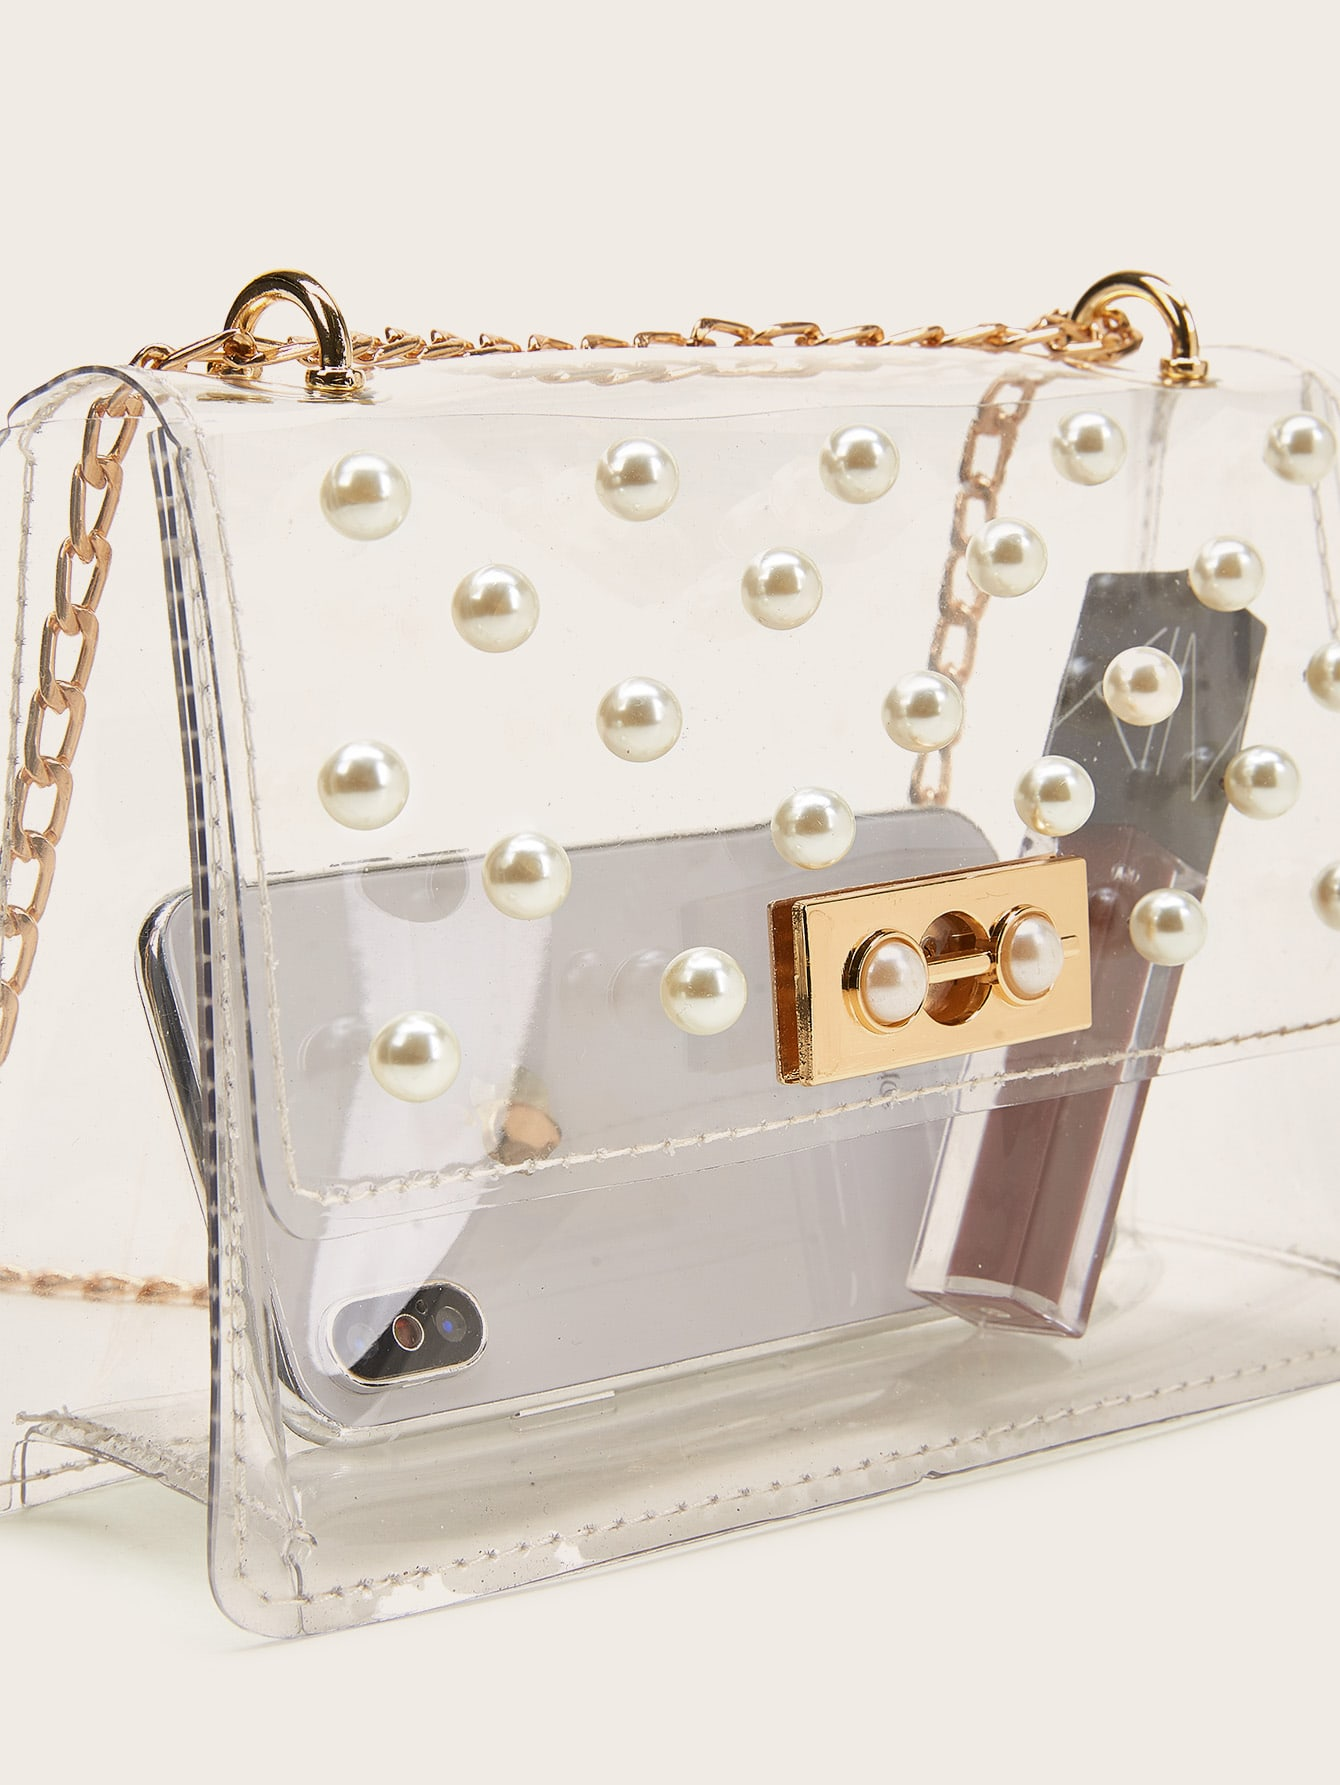 Off White with Gold Clasp Xiazw DIY Short Large Imitation Pearl Bead Purse Handle Strap Bag Charms Handbag Chain Replacement Accessories Decoration